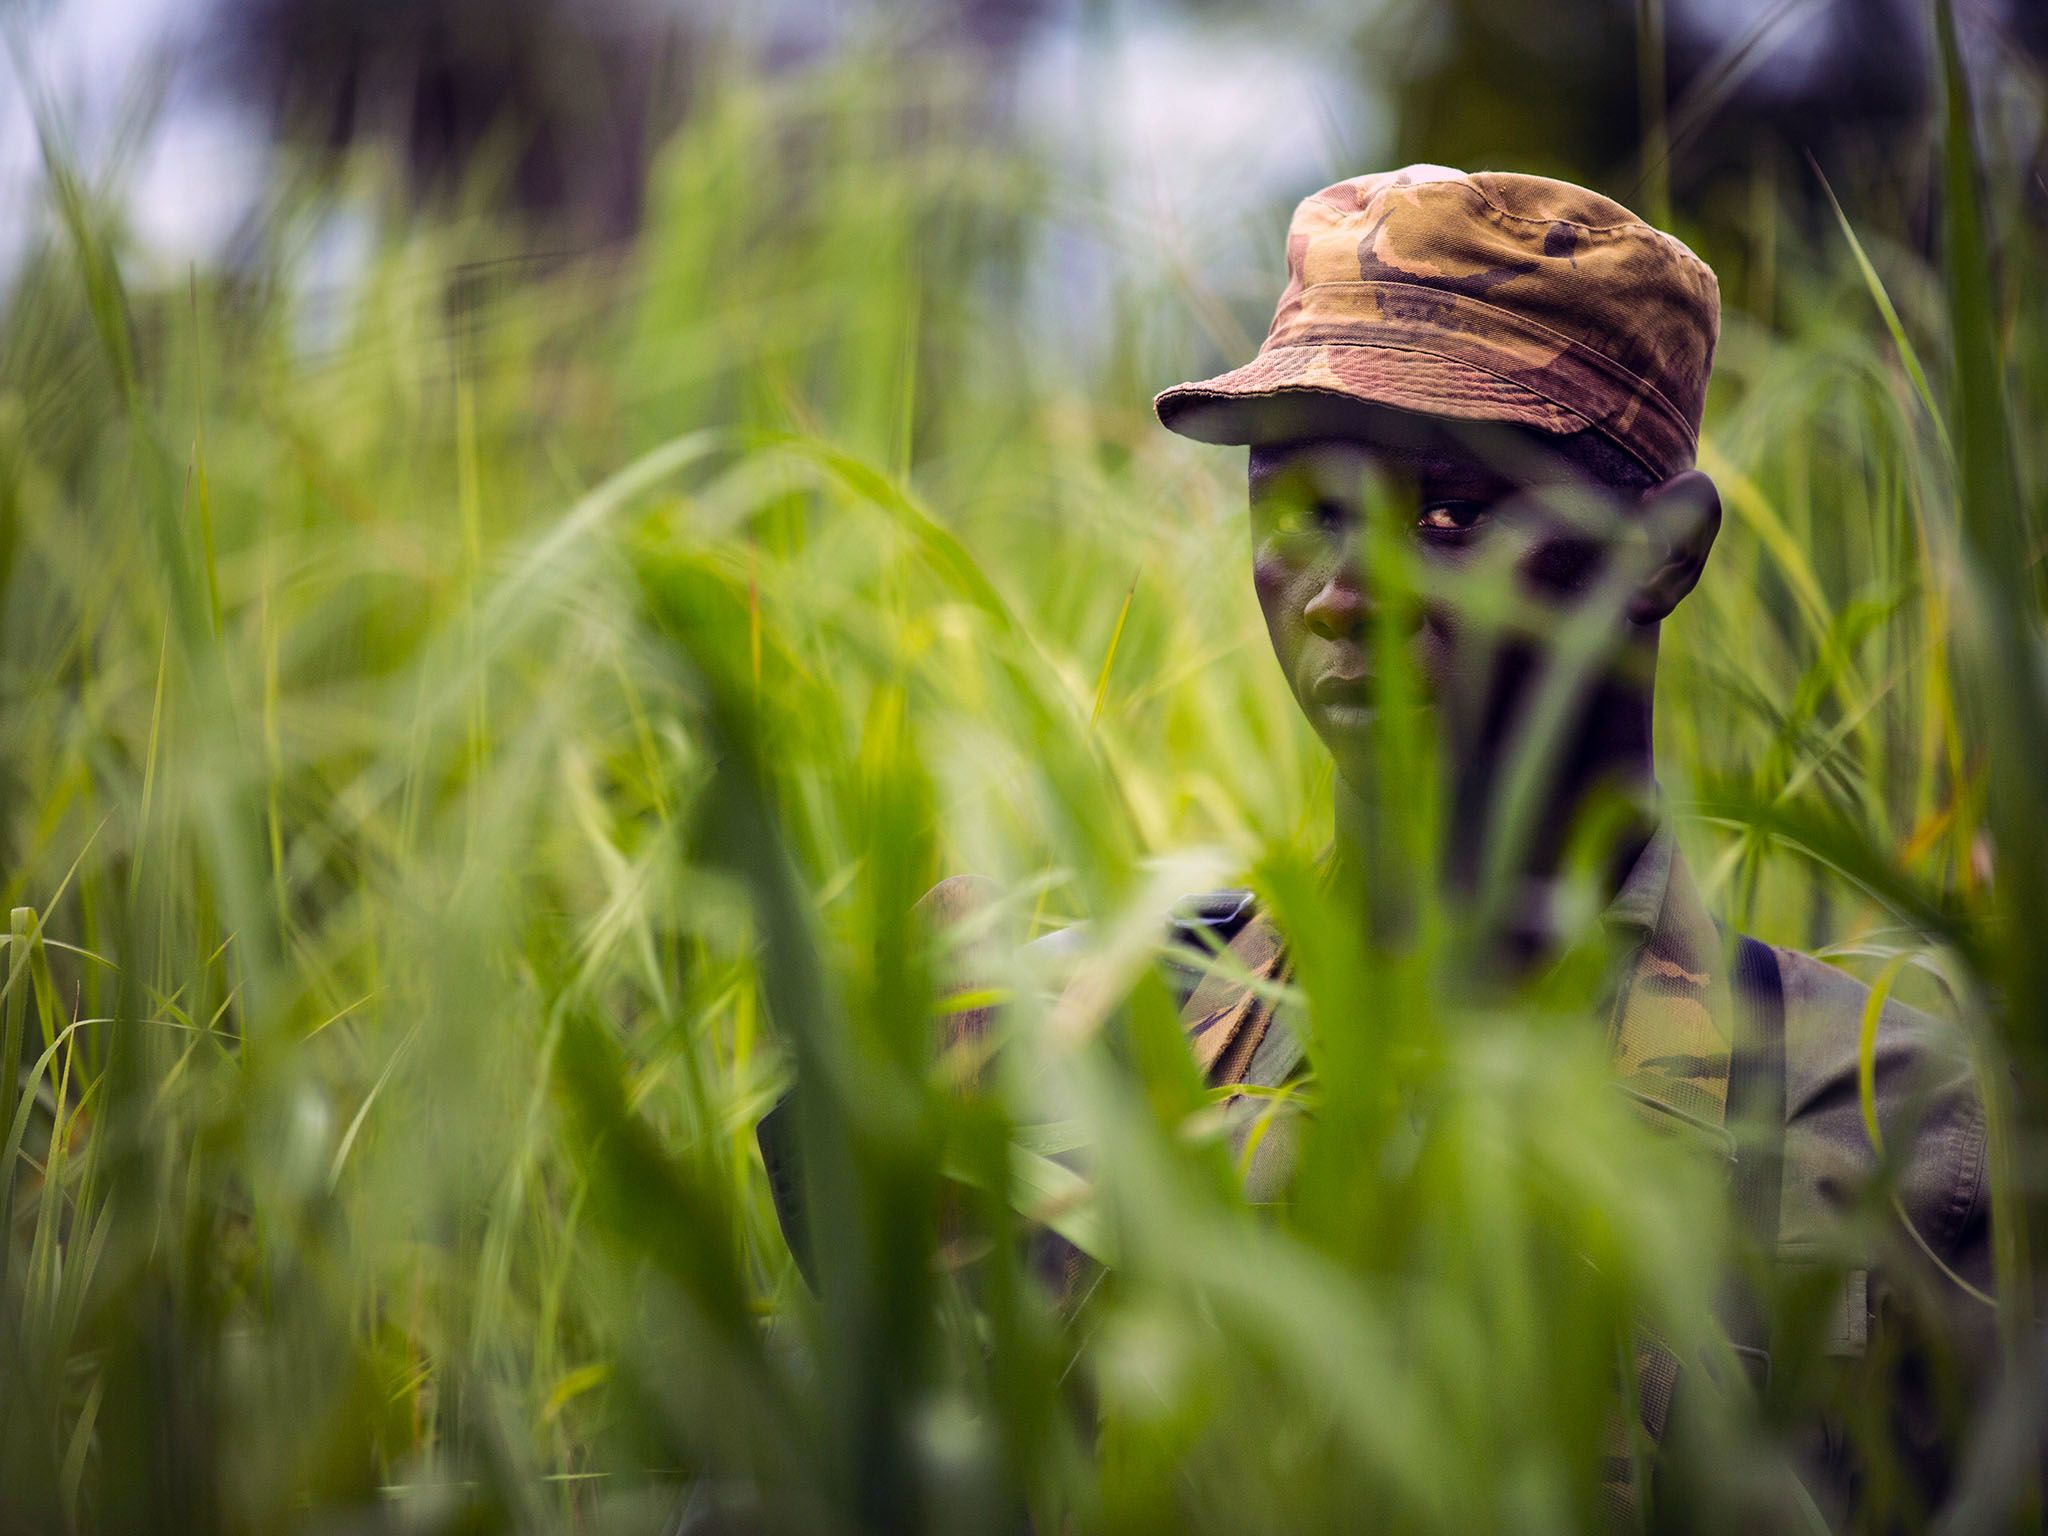 Garamba National Park, Democratic Republic Of Congo: A Garamba ranger looks through tall grass... [Photo of the day - September 2015]